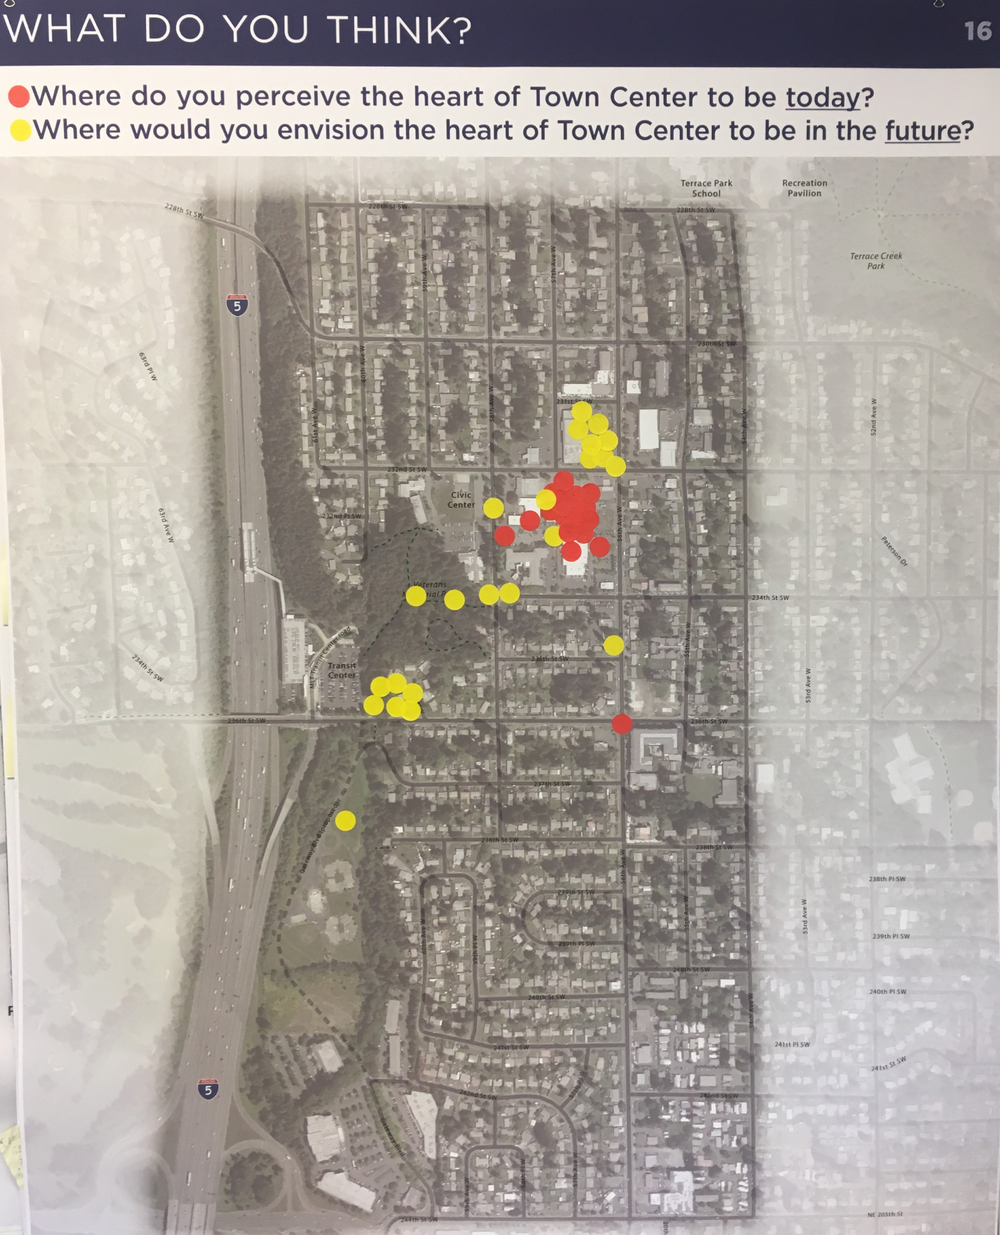 Public Workshop-Placement of Dots by Attendees Indicating Preferred Locations - May 15%2C 2018 Page 003.png